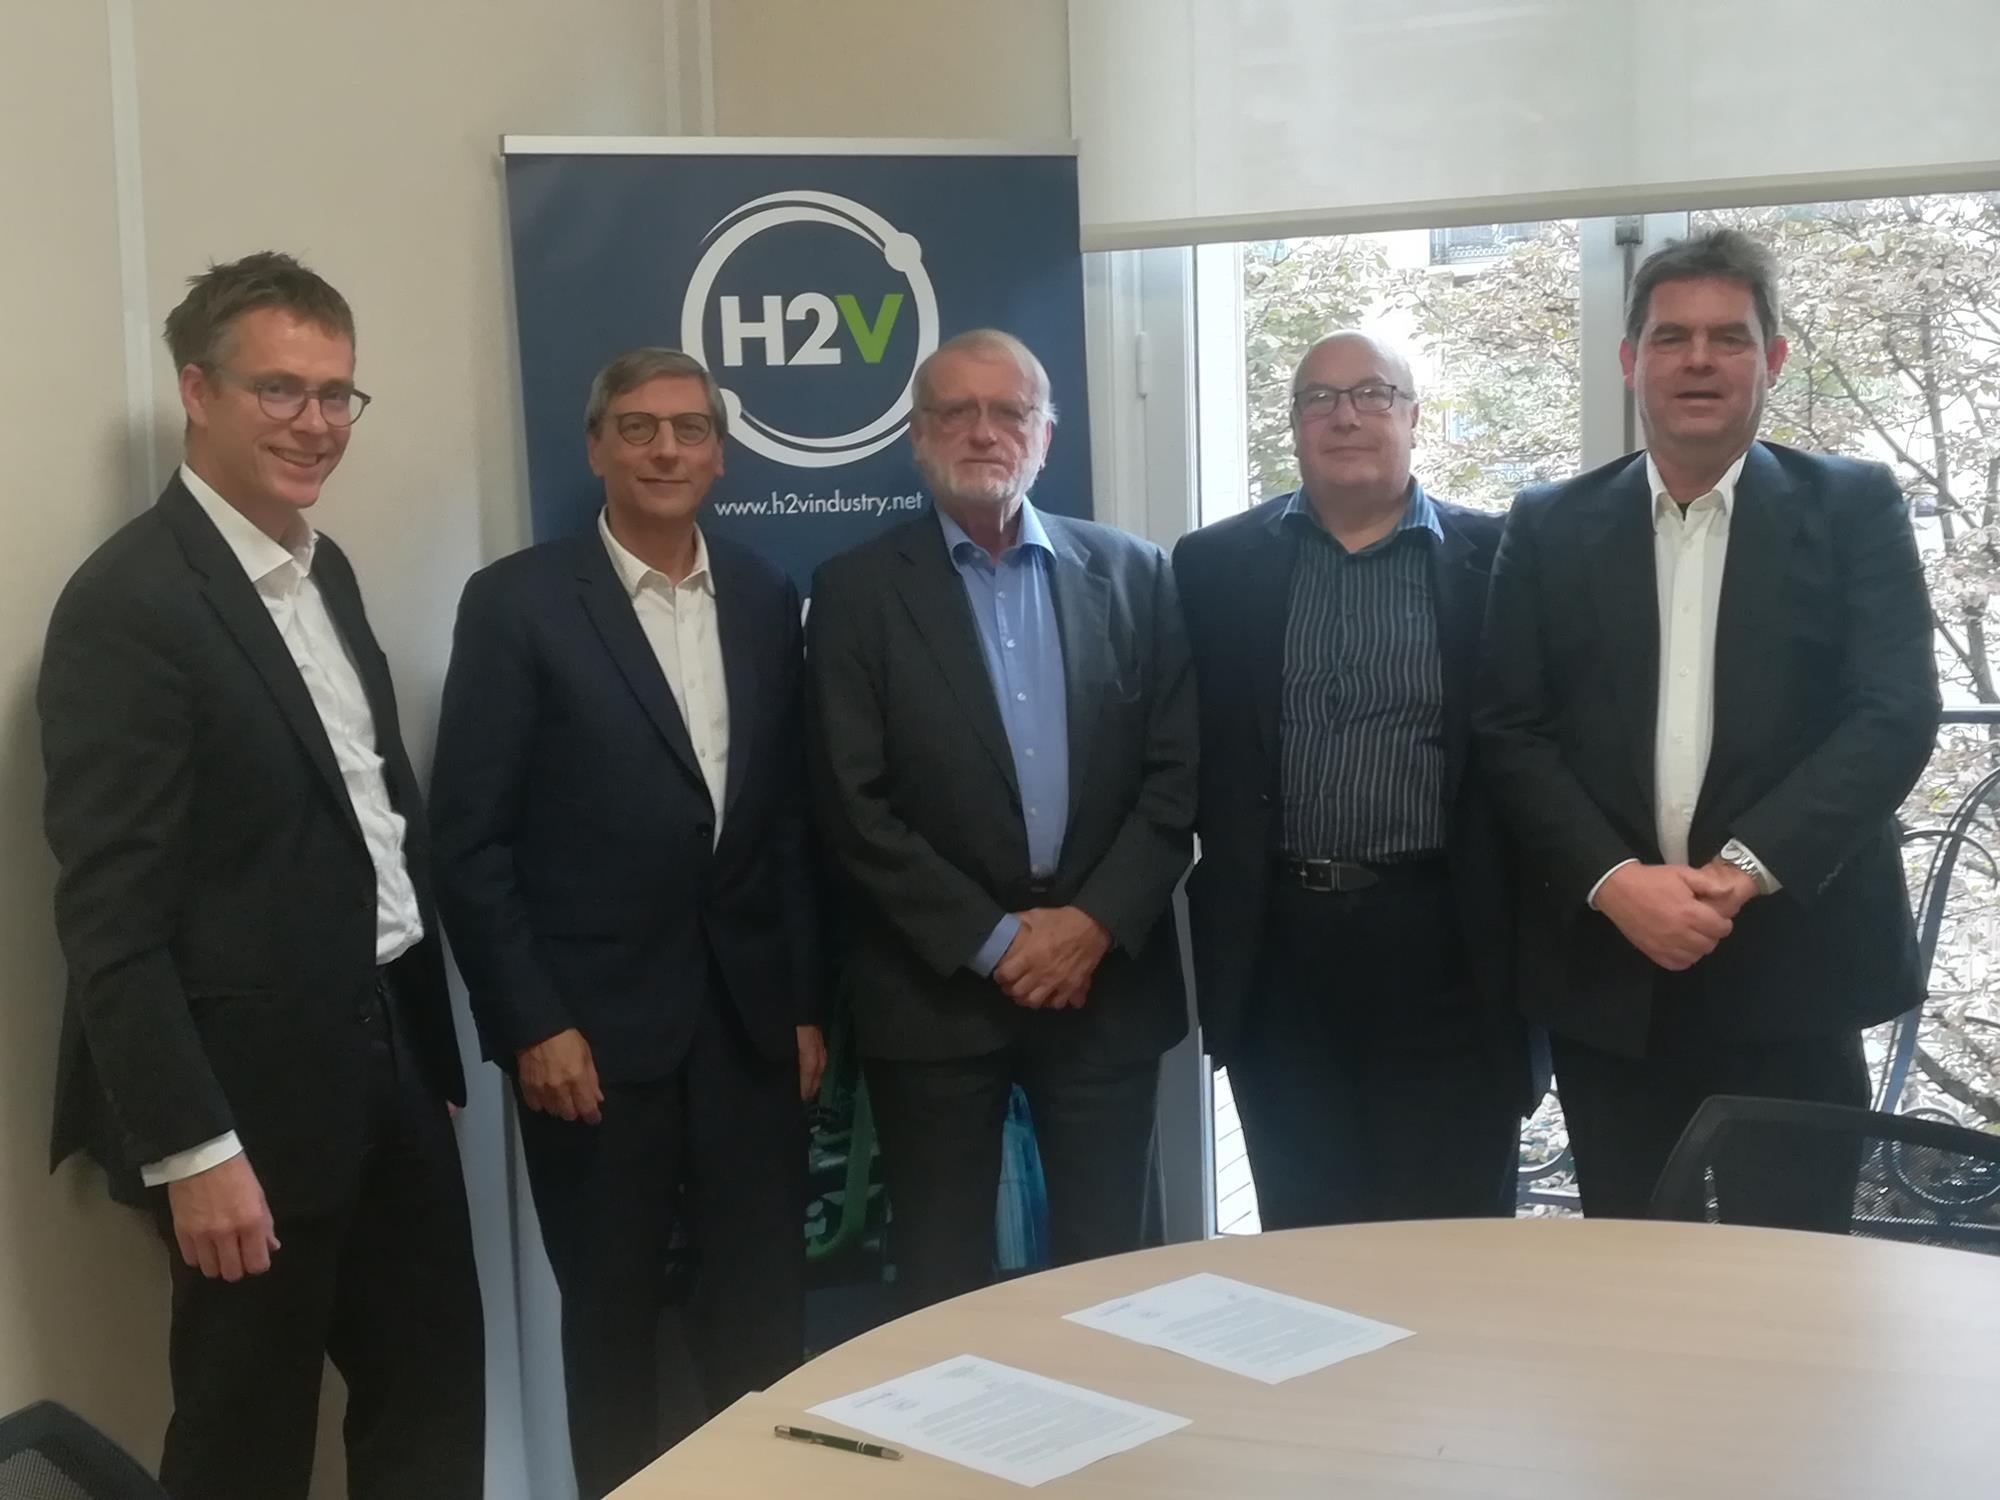 H2V INDUSTRY and Hydrogen Pro join forces | News | gasworld